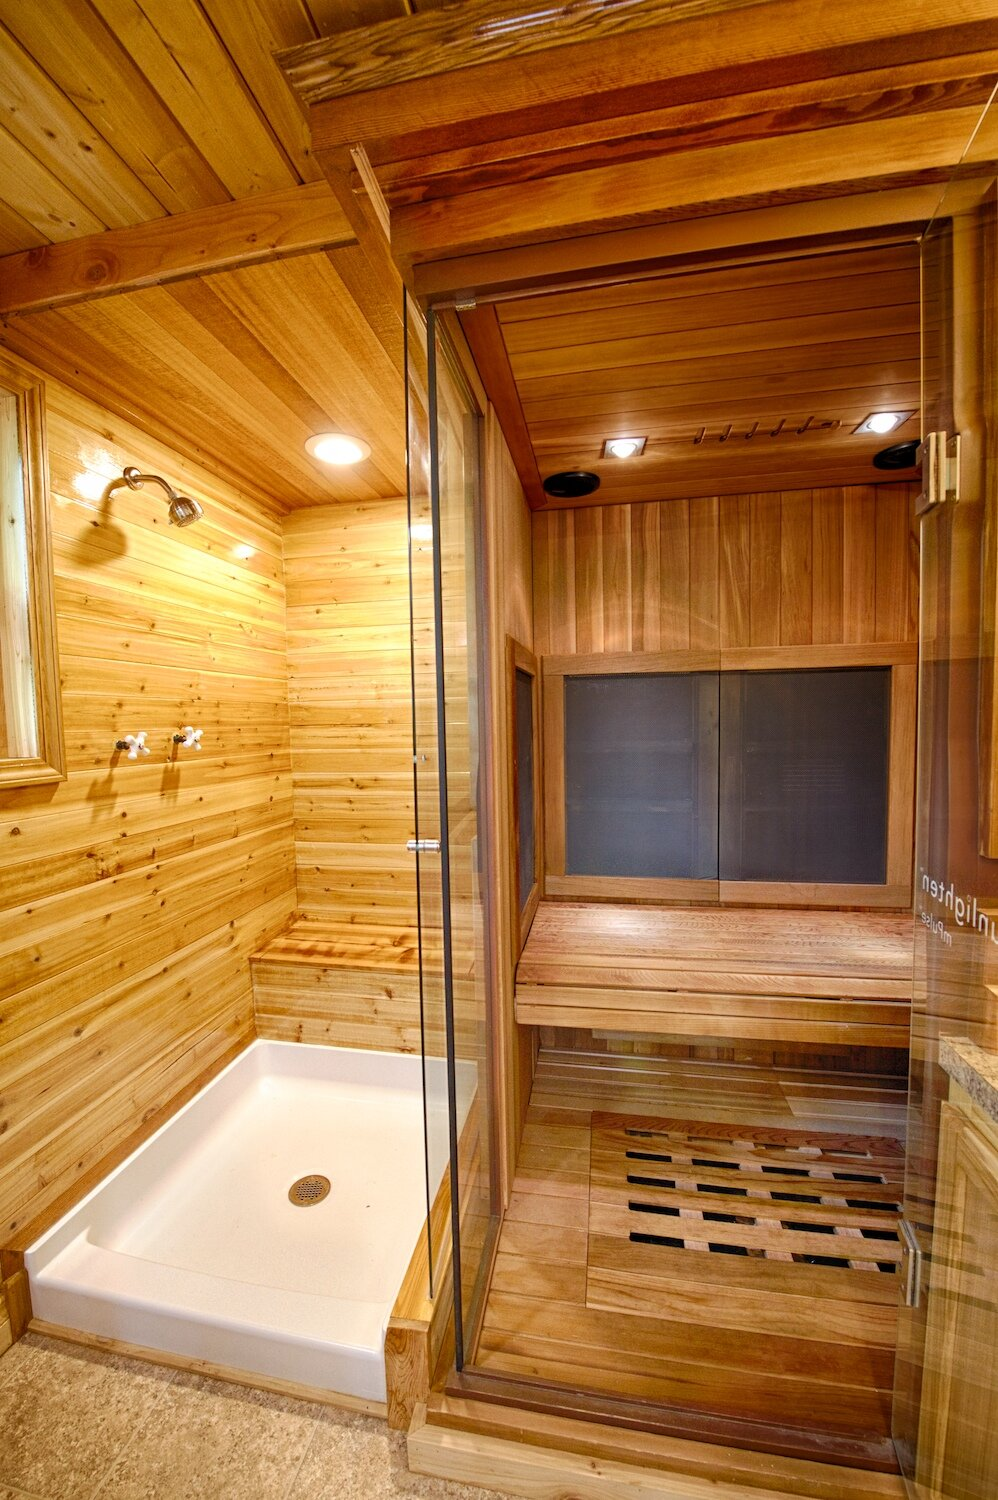 A Tiny House with a Sauna - Hope Island Cottages Micro House Design Bathroom on micro house windows, micro house deck, micro house interior, micro house building, micro house exterior, micro house glass, micro house bed, micro house storage, micro house living, micro house library, micro house bedroom, micro house loft, micro house with garage, micro house furniture, micro house kitchen, micro house snow, micro house cabinets, micro house cabin, micro house studio, micro house design,